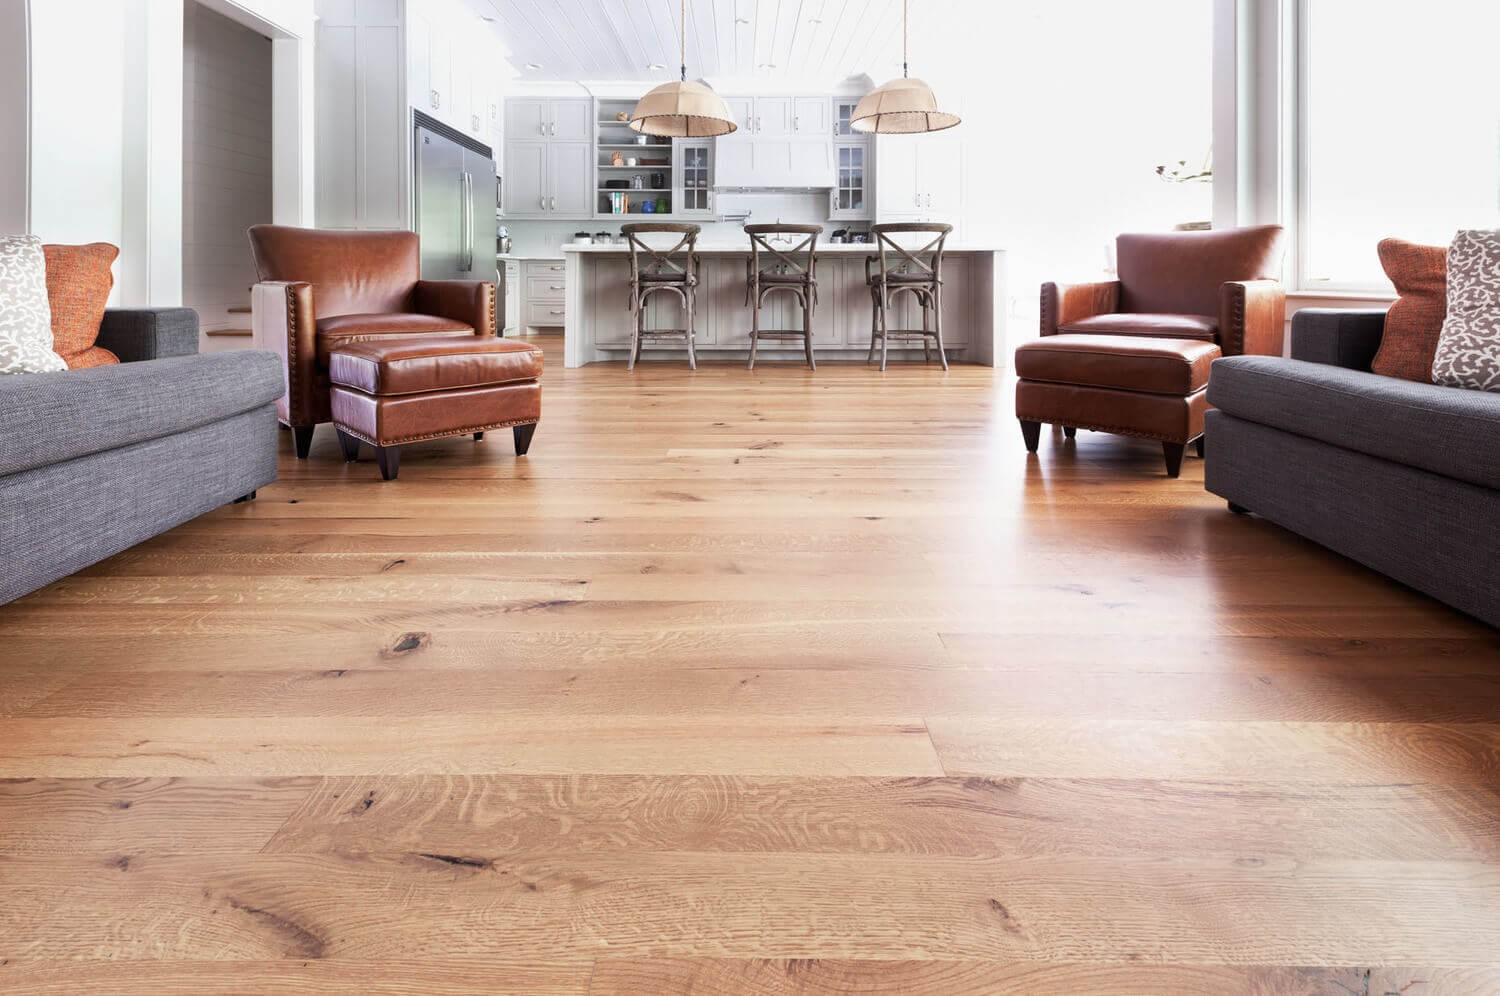 Refinishing Hardwood Floors Cost Per Square Foot